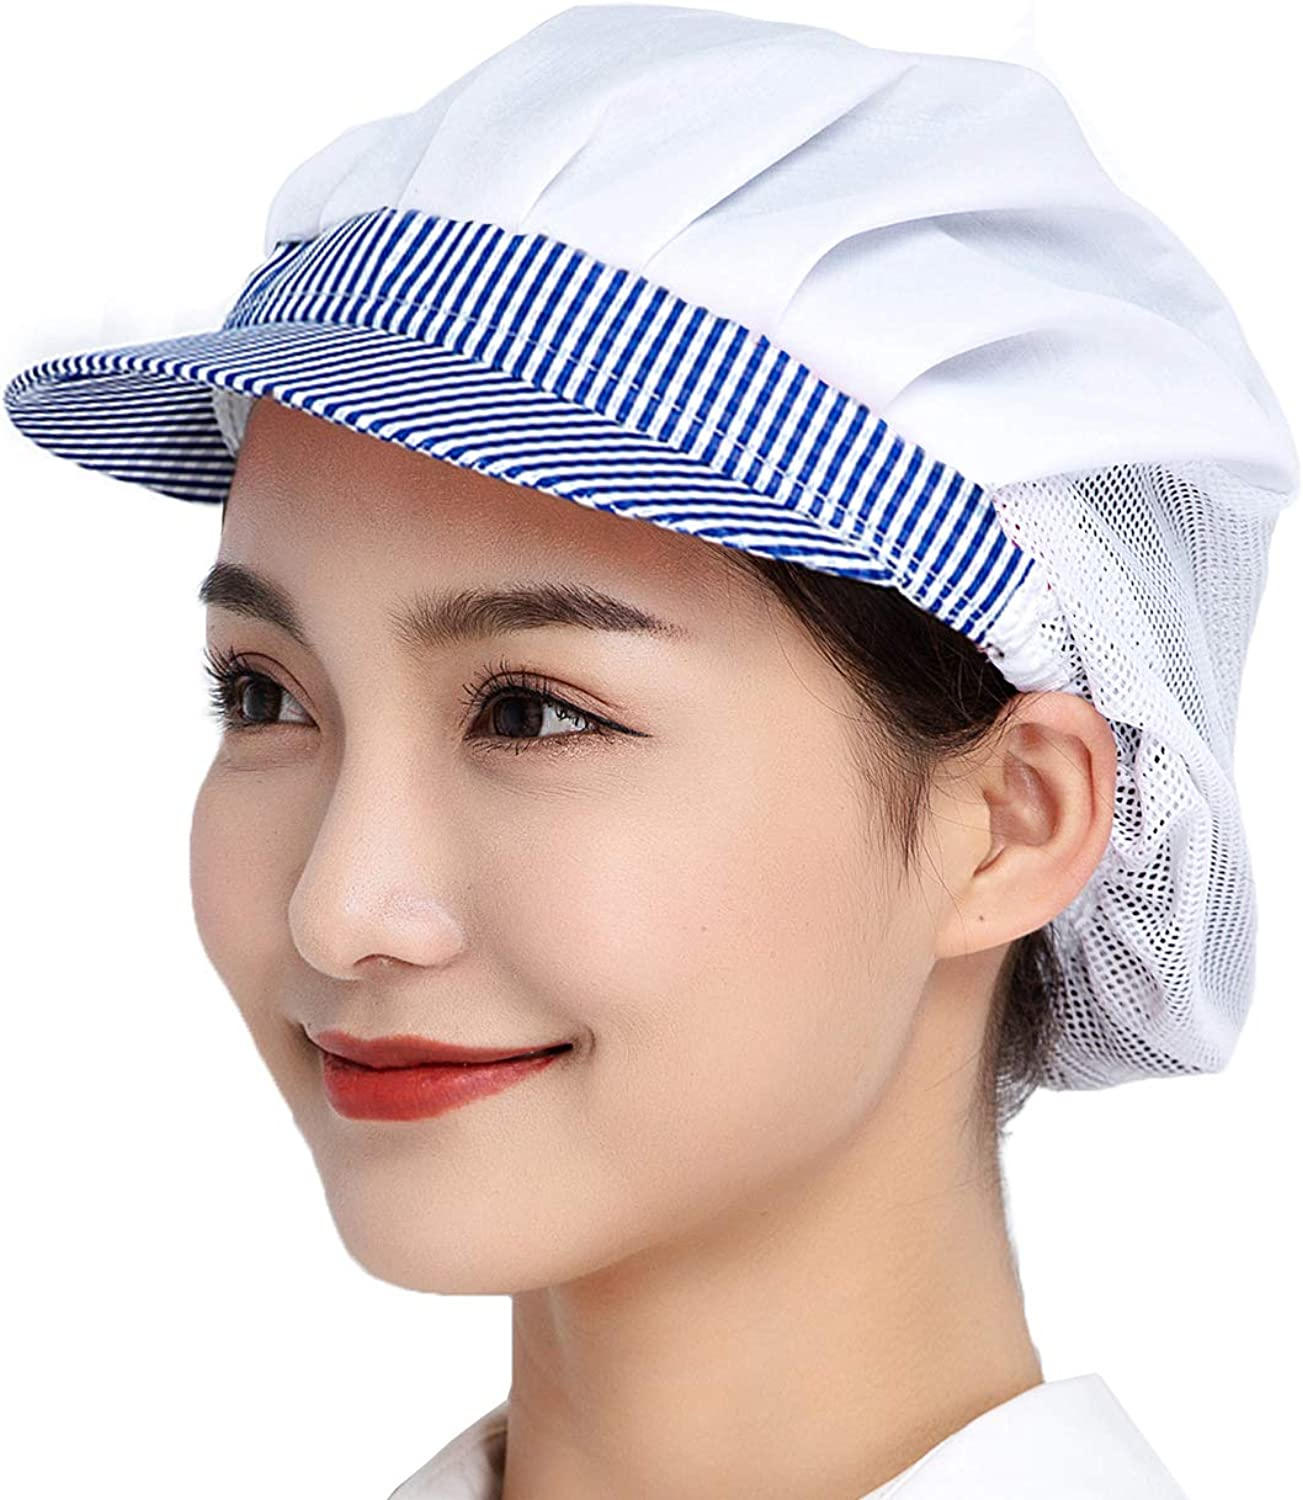 Jaspfct 3pcs Chef Hats, Hair Nets Food Service,Kitchen,Cooking,Work Cap with Brim for Adults